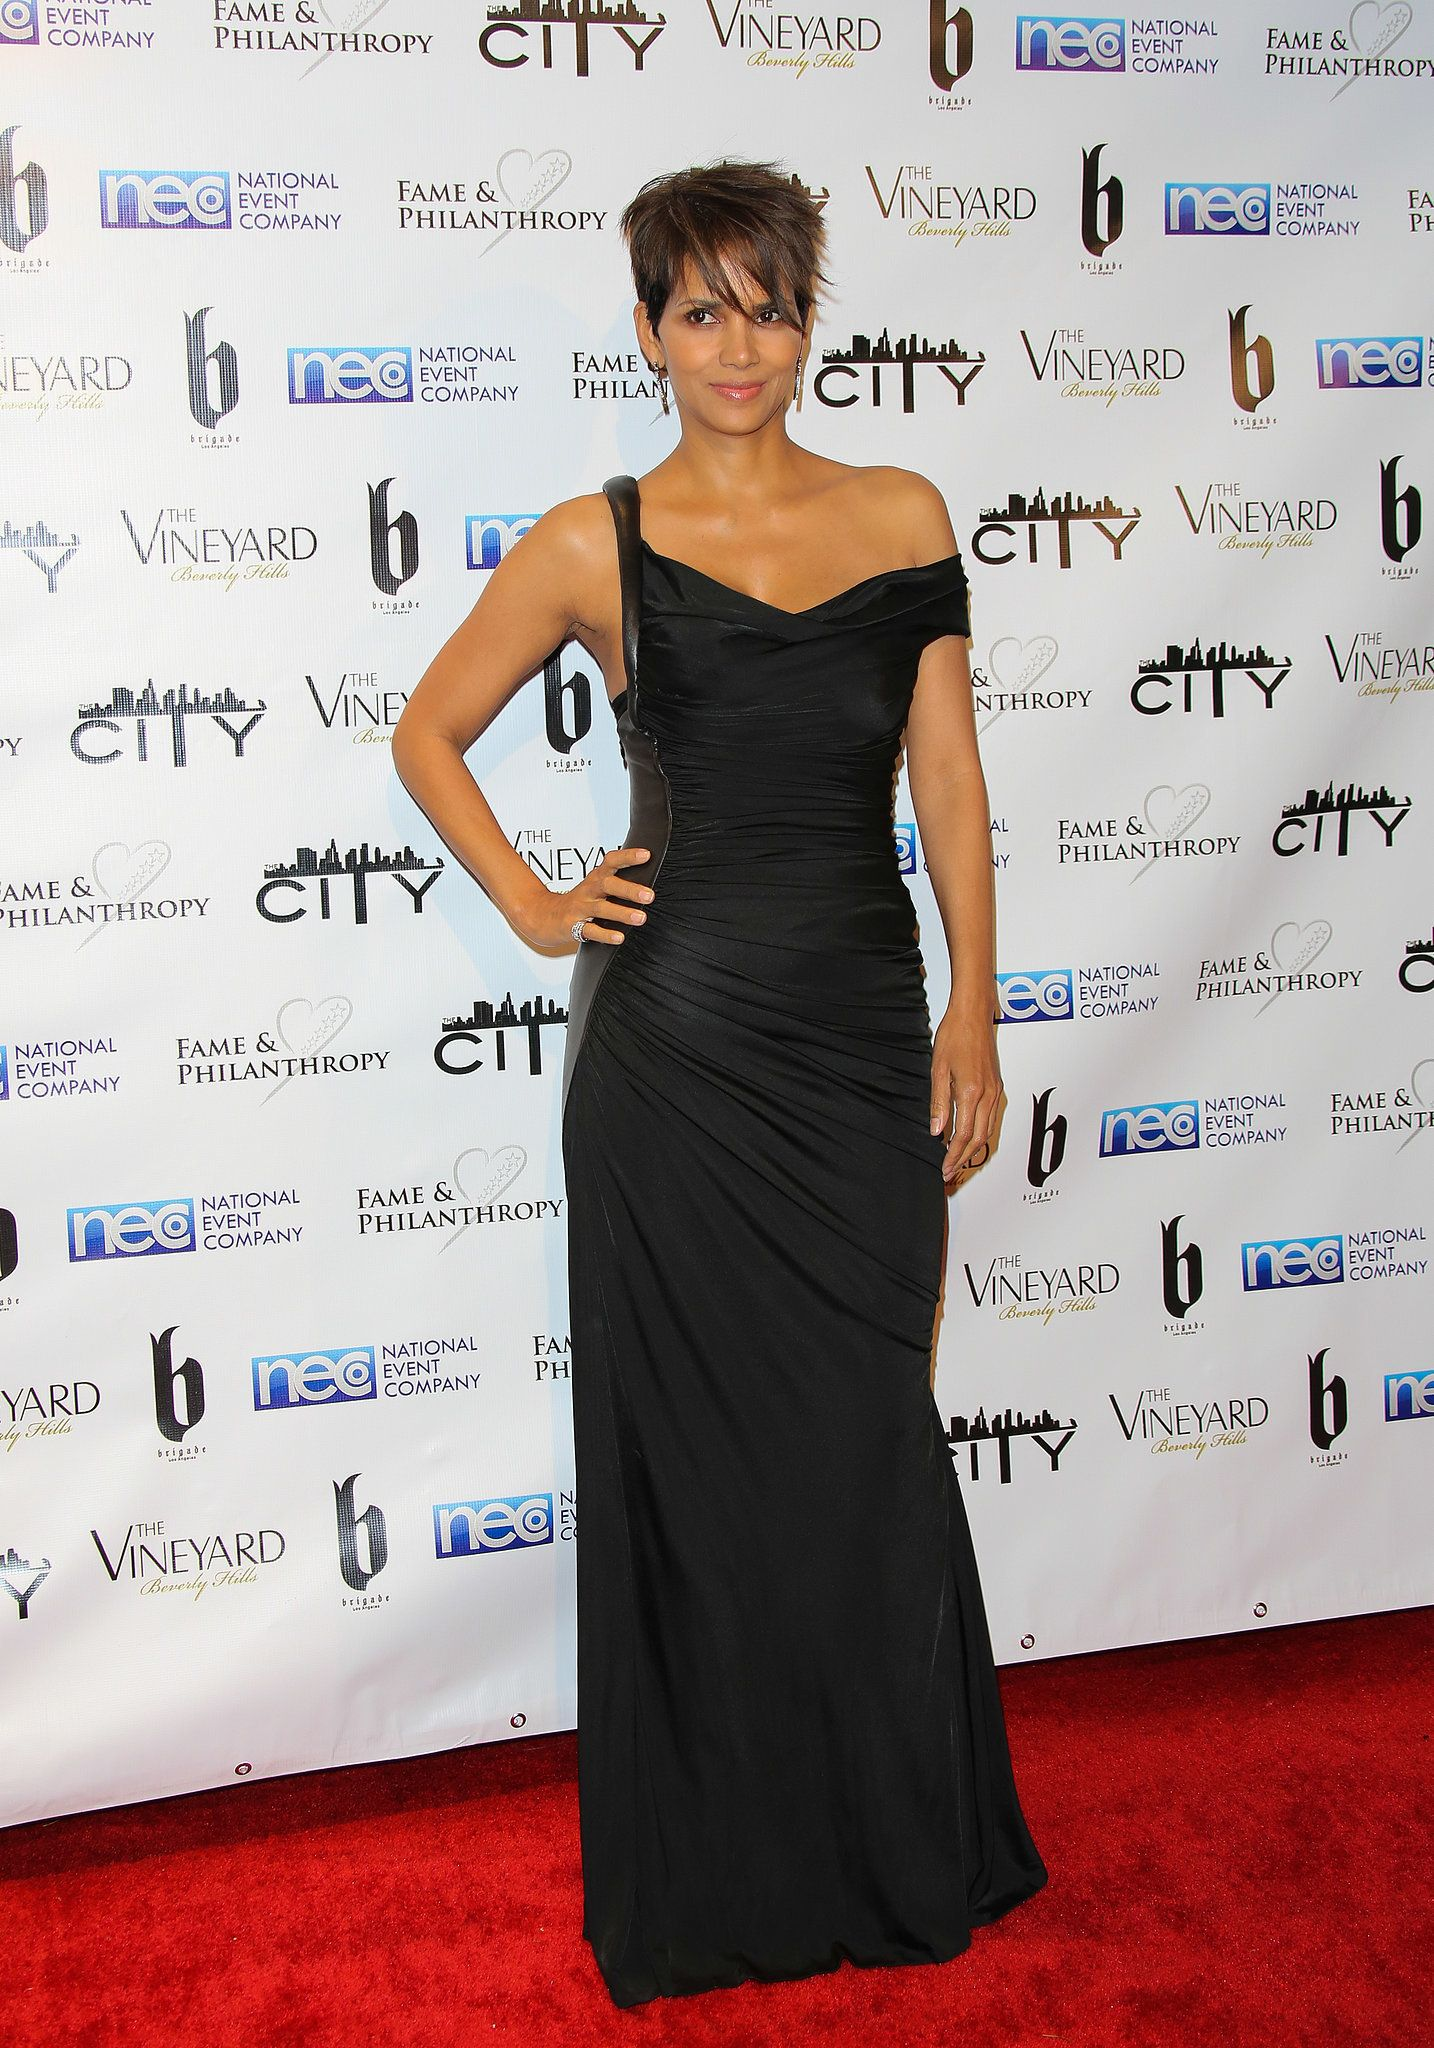 Halle Berry chose a black vintage Versace dress for the Fame and Philanthropy Post-Oscar Party. She rounded the look out with Stuart Weitzman heels.